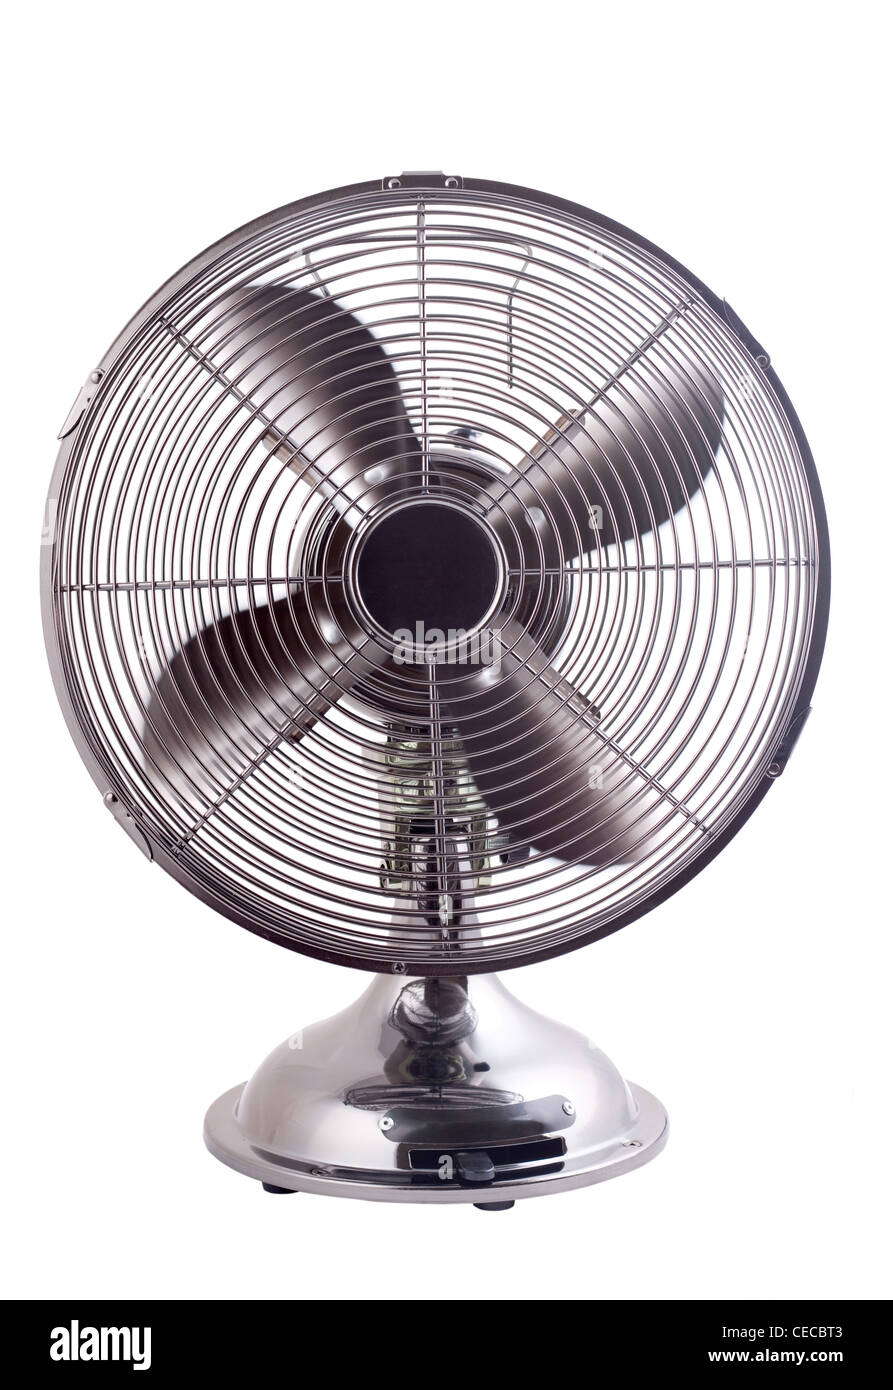 Isolated image of an elegant designed fan working against a white background - Stock Image